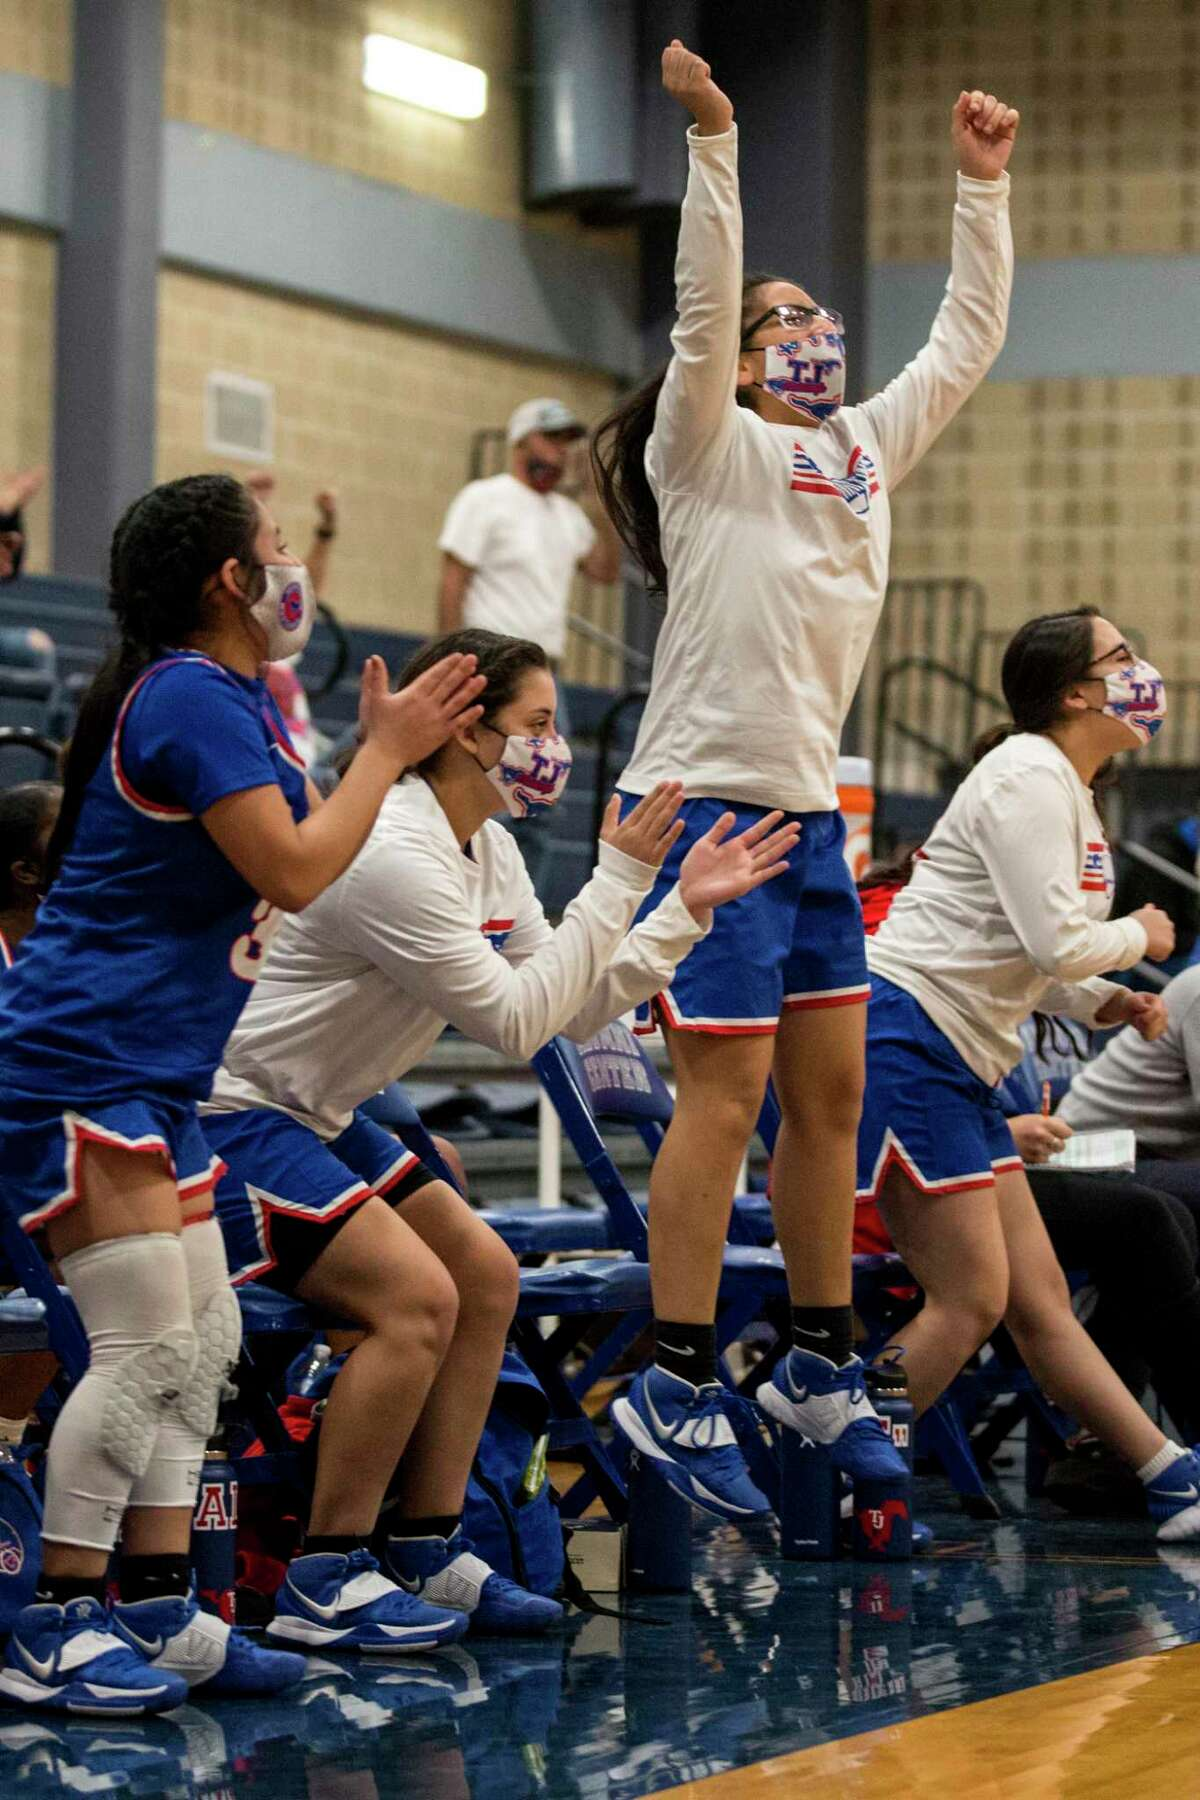 Jefferson players cheer their teammates onto victory against Sam Houston Tuesday, February 2, 2021. The win against Sam Houston gave Jefferson their first district championship in the school's history.